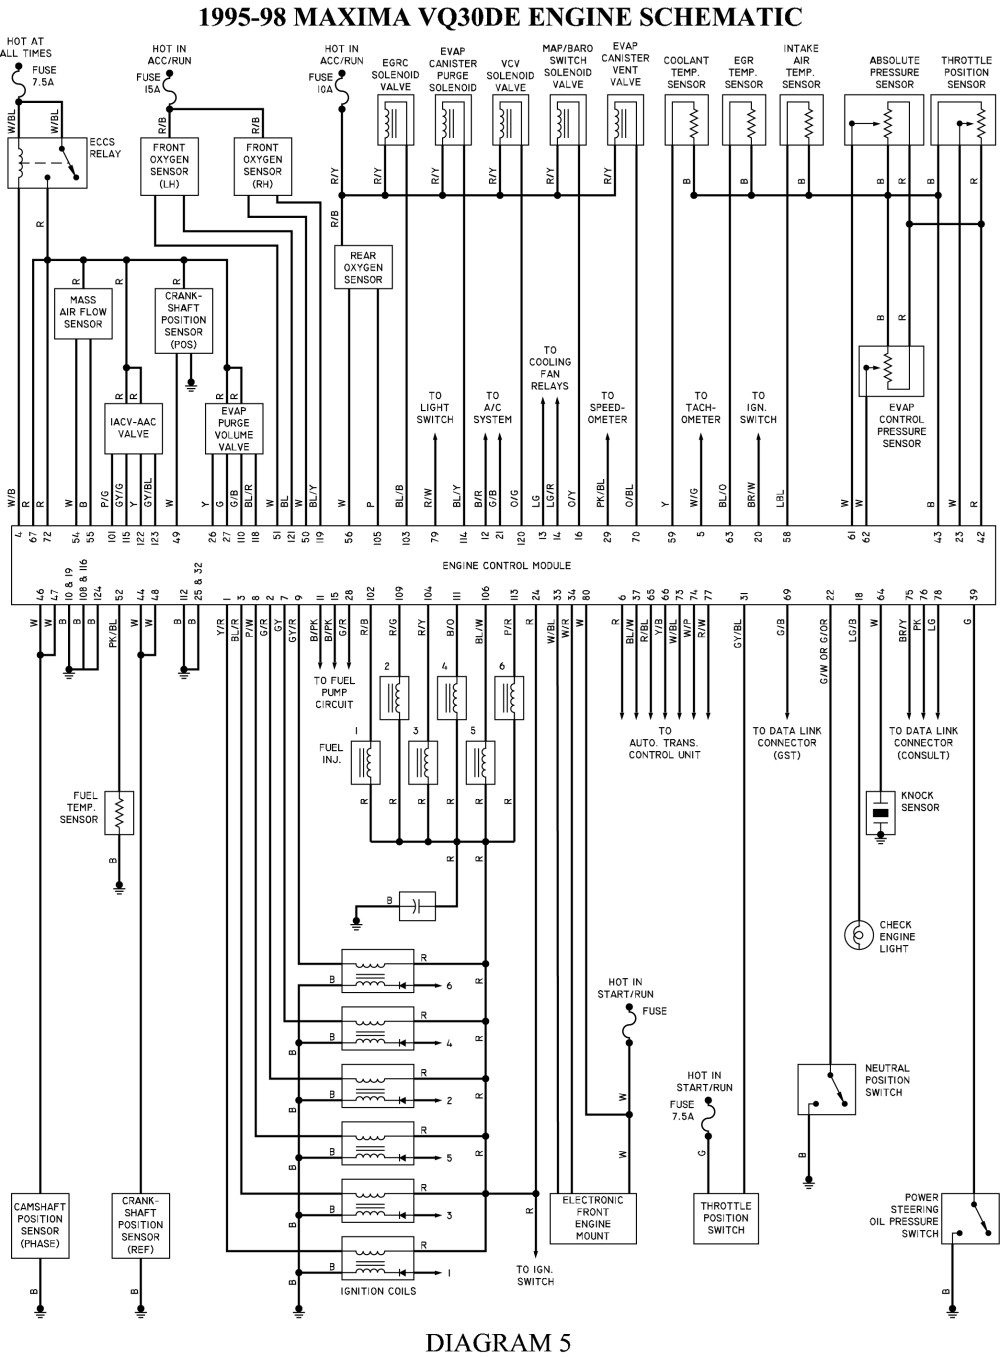 wiring diagram nissan maxima 1995 custom wiring diagram u2022 rh littlewaves co 1997 nissan pathfinder wiring diagram 97 nissan pickup wiring diagram